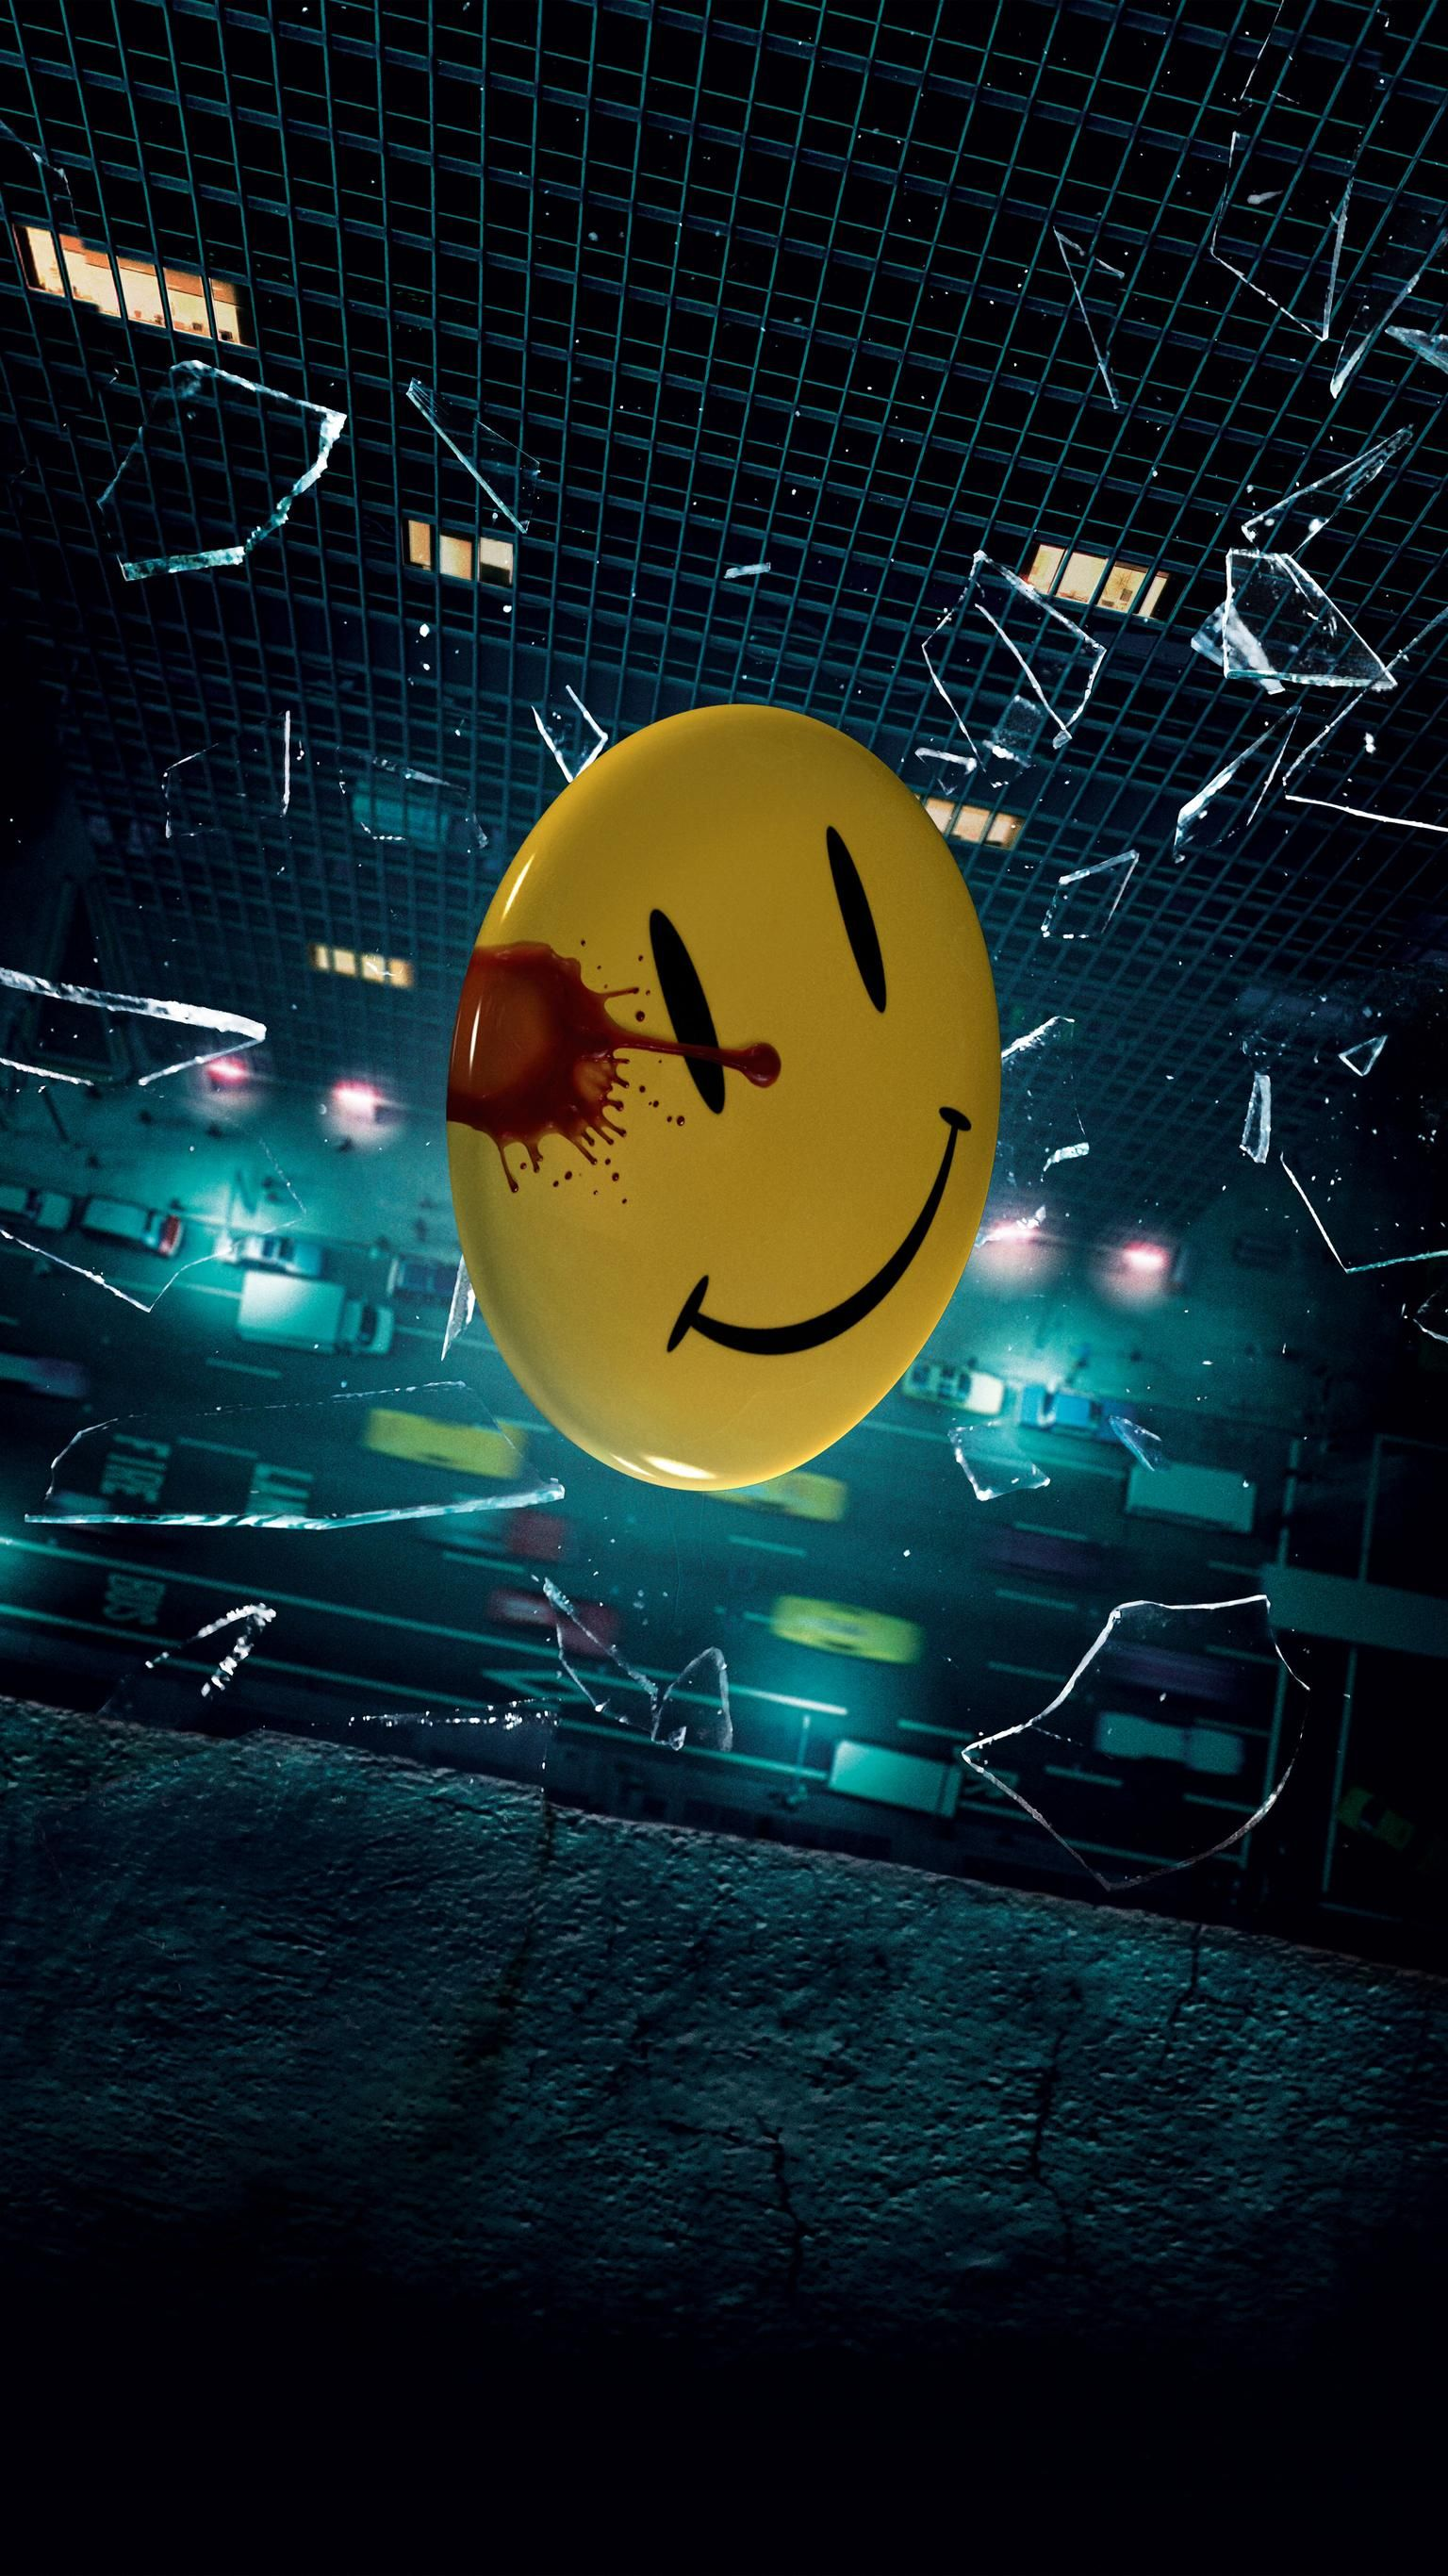 Watchmen 2009 Phone Wallpaper Moviemania Dc Comics Wallpaper Anime Wallpaper Wallpaper